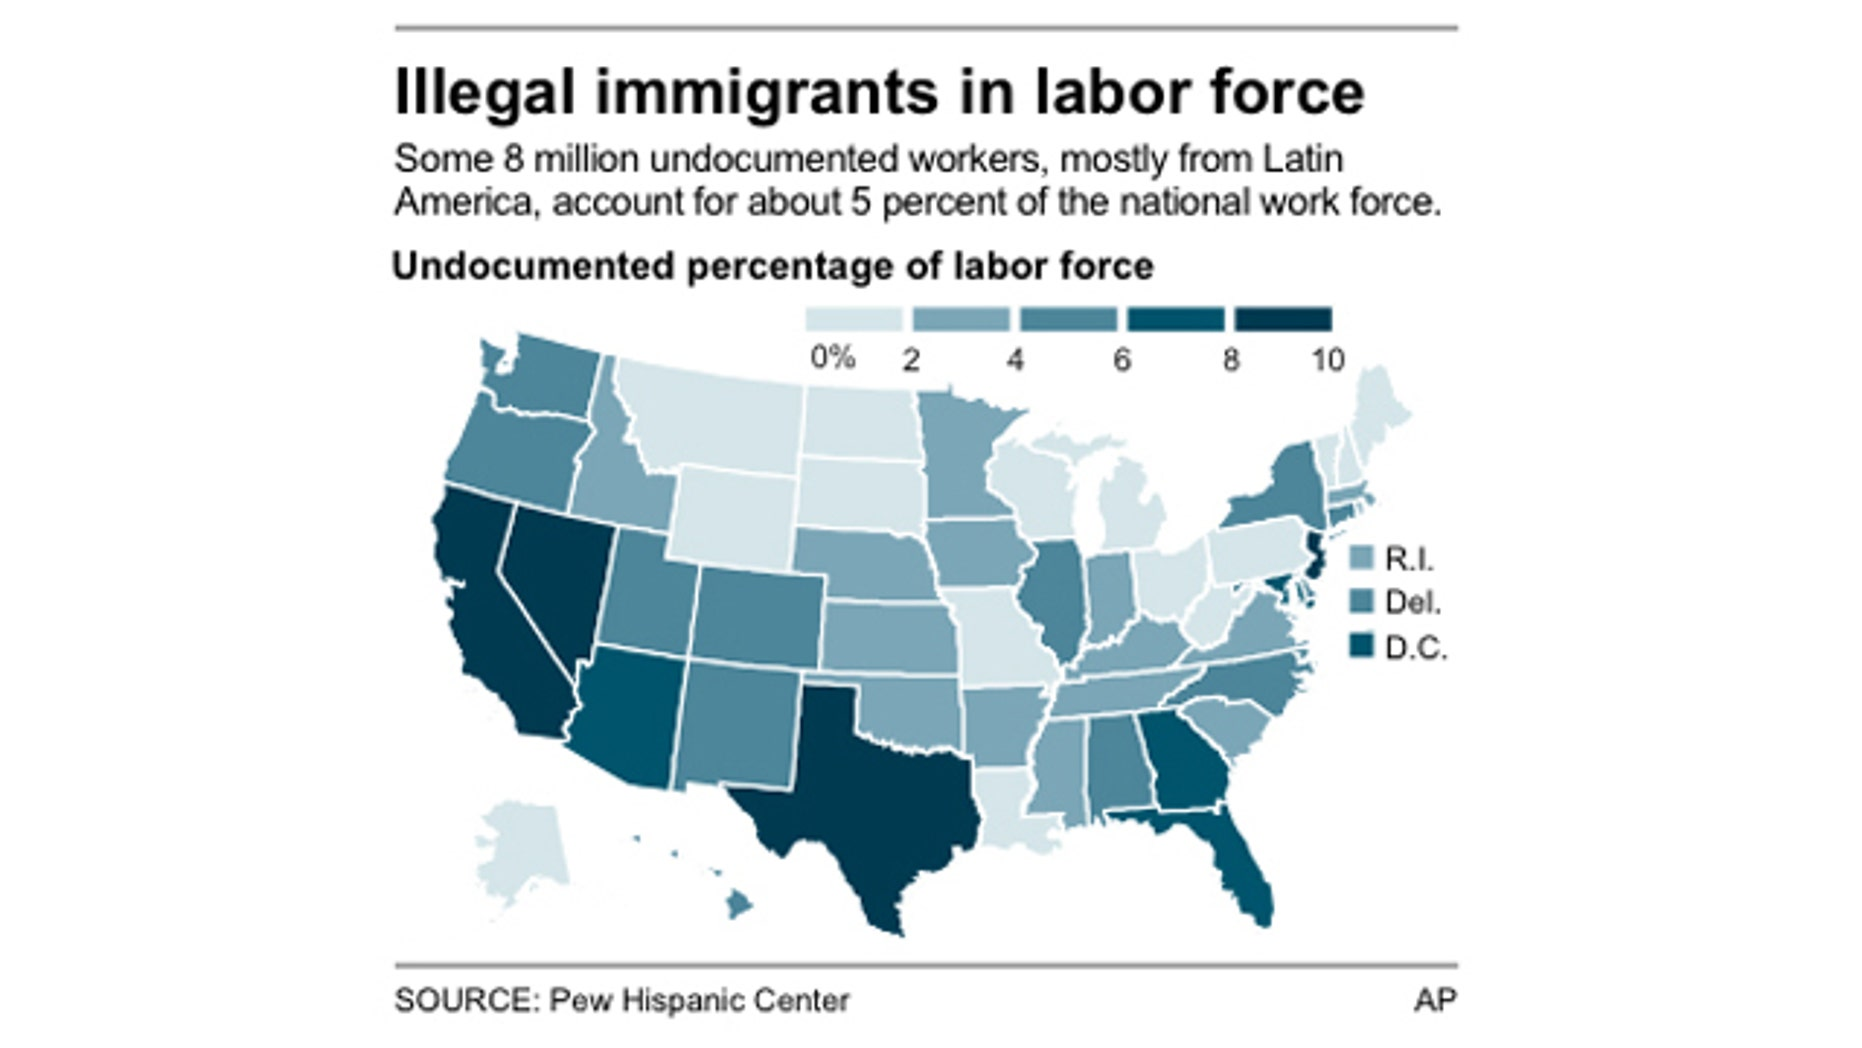 Map shows the undocumented percentage of labor force by state.